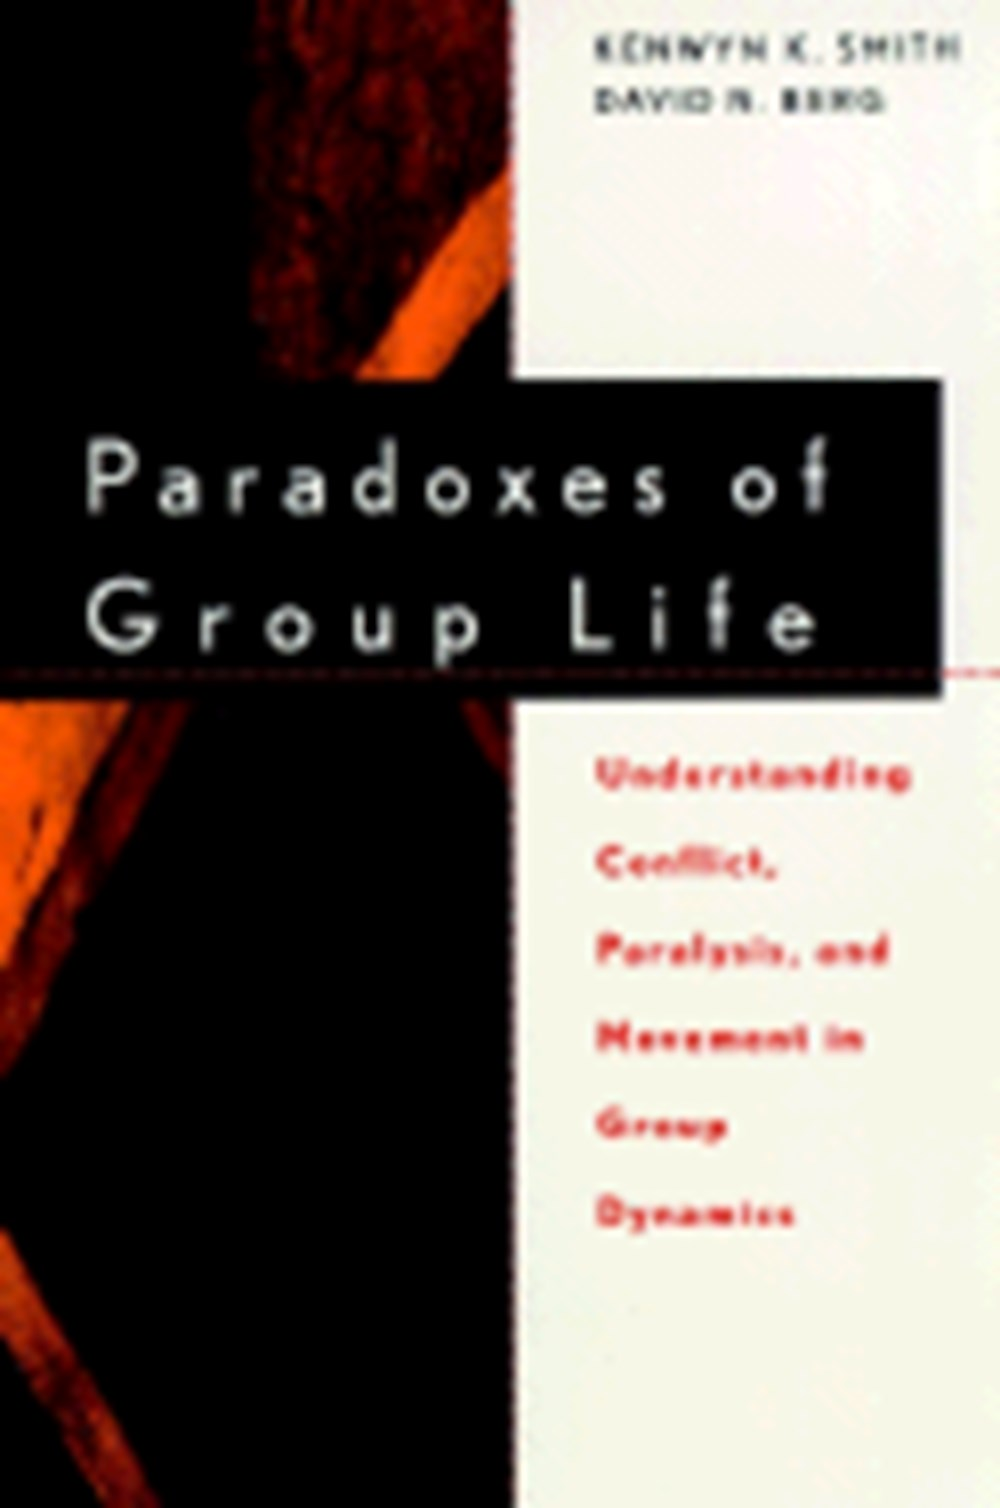 Paradoxes of Group Life Understanding Conflict, Paralysis, and Movement in Group Dynamics